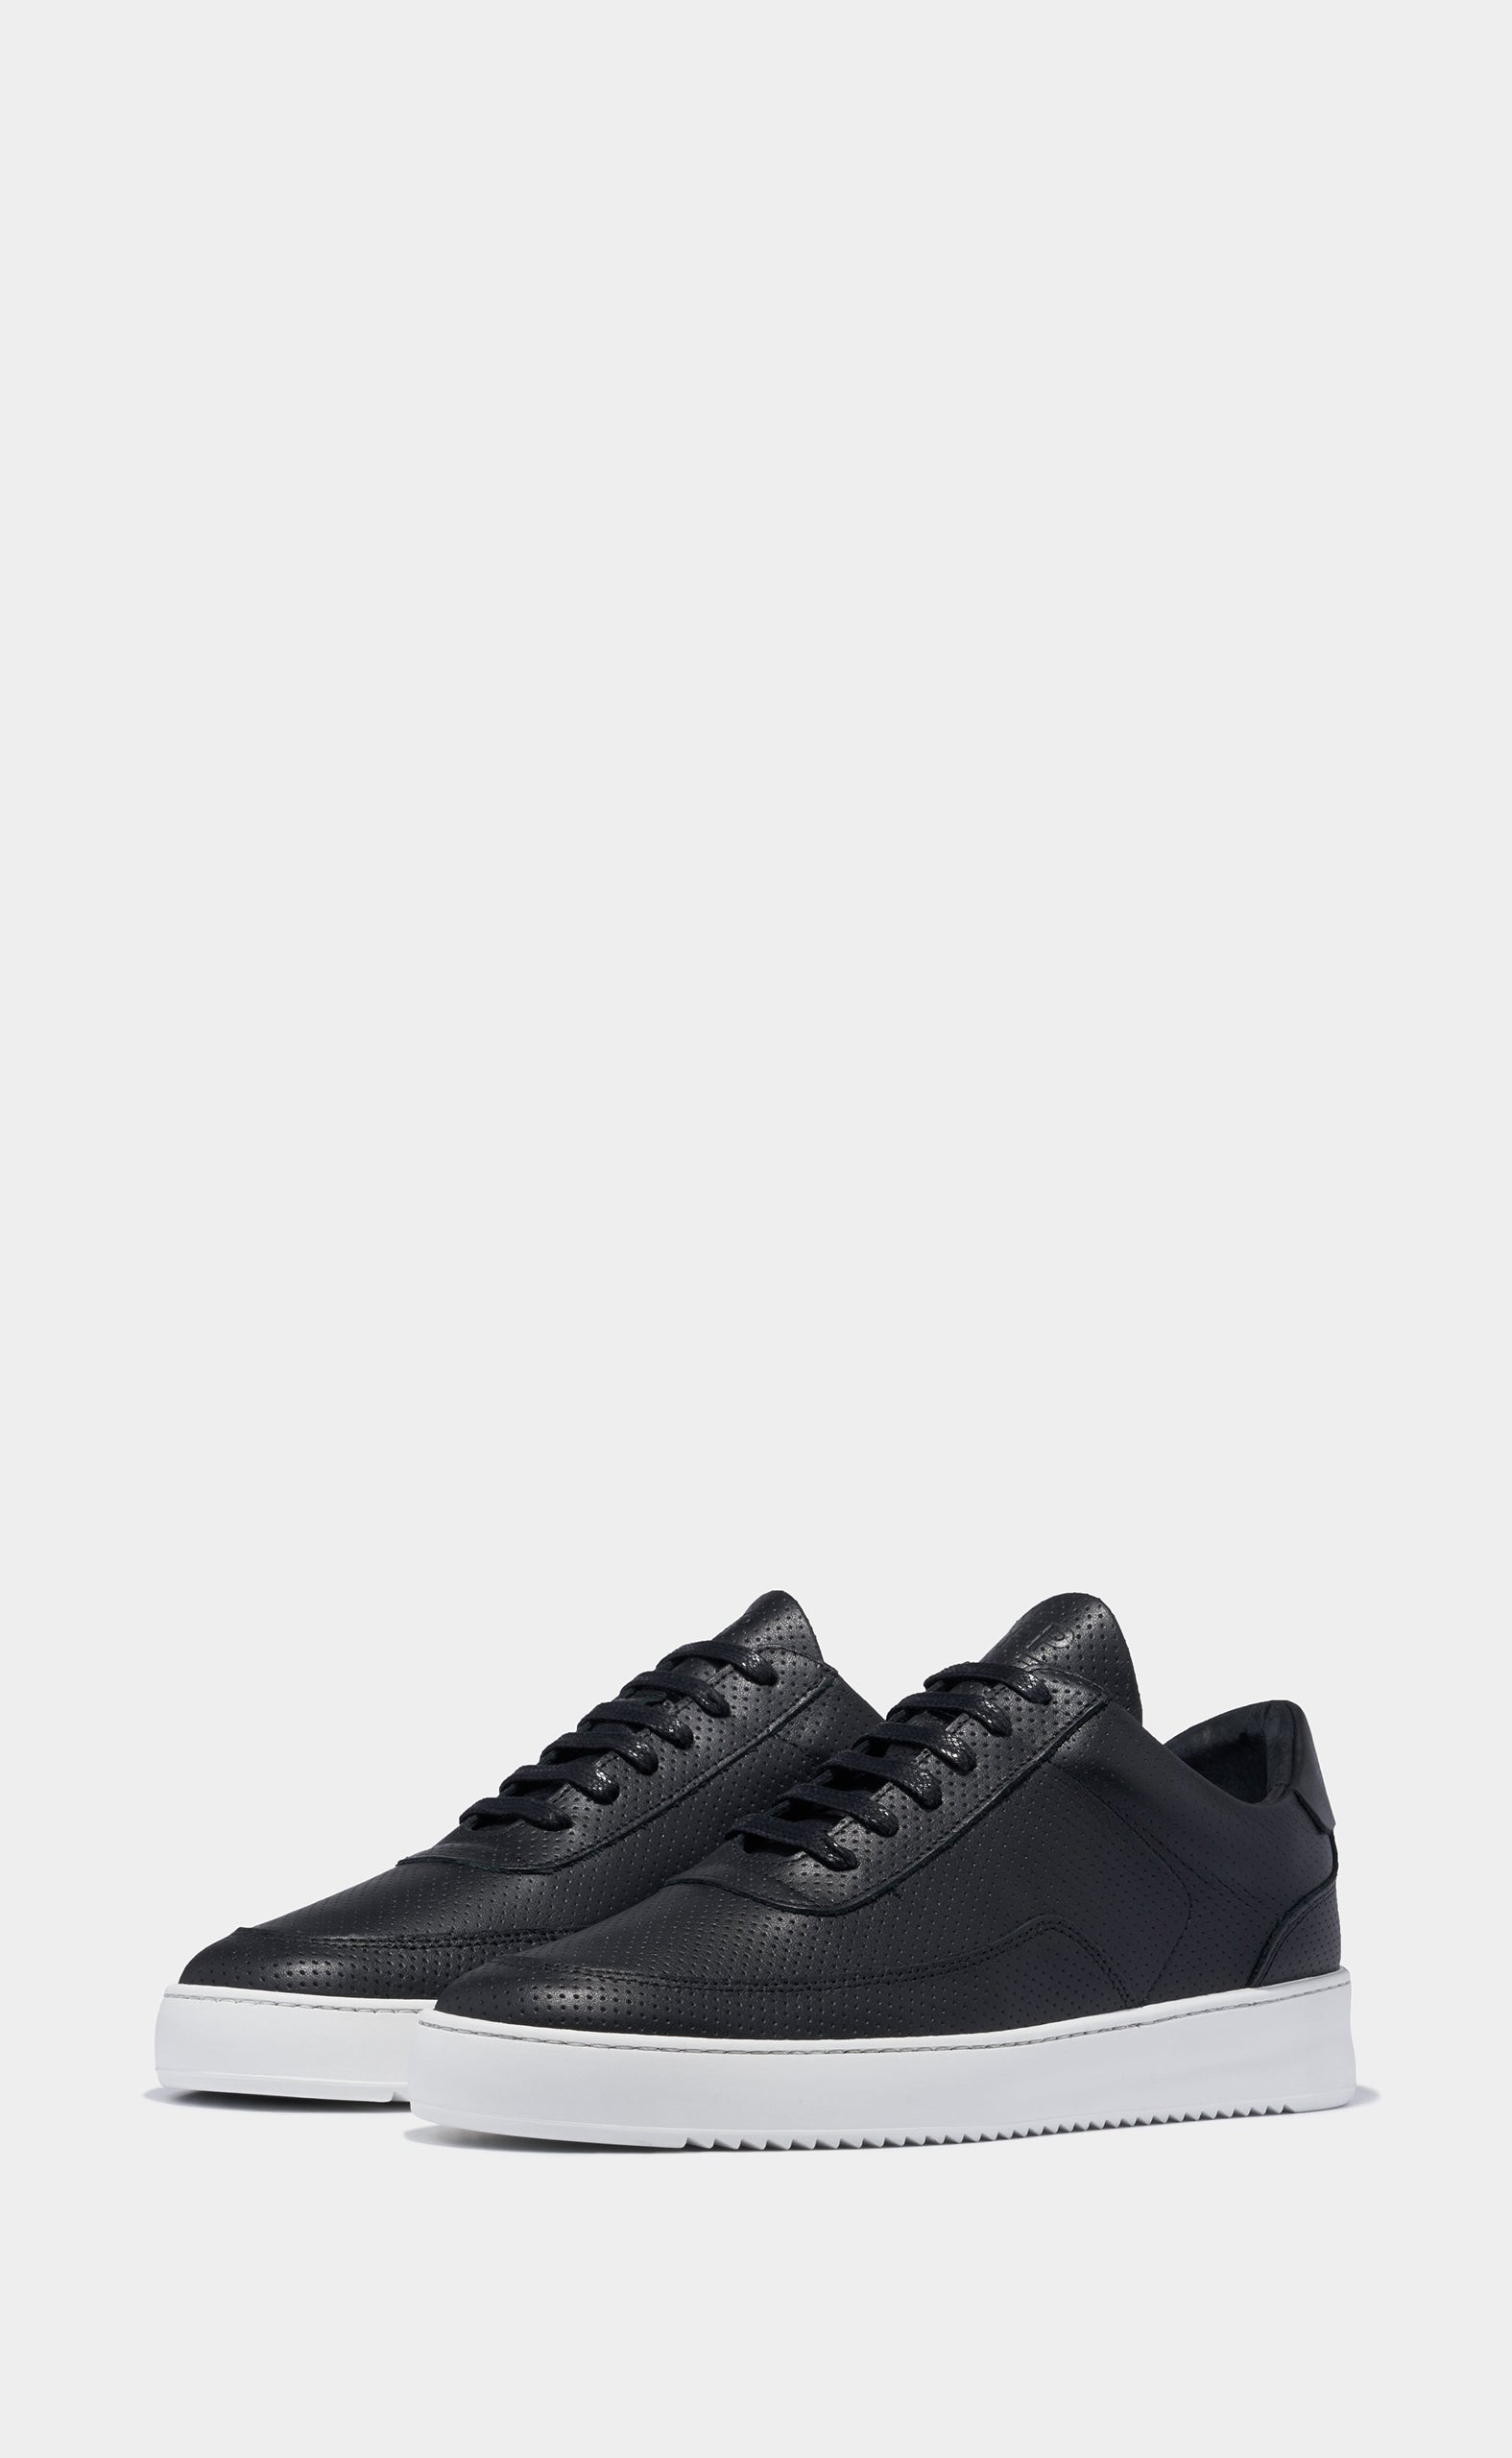 Low Mondo Ripple Nappa Perforated Black